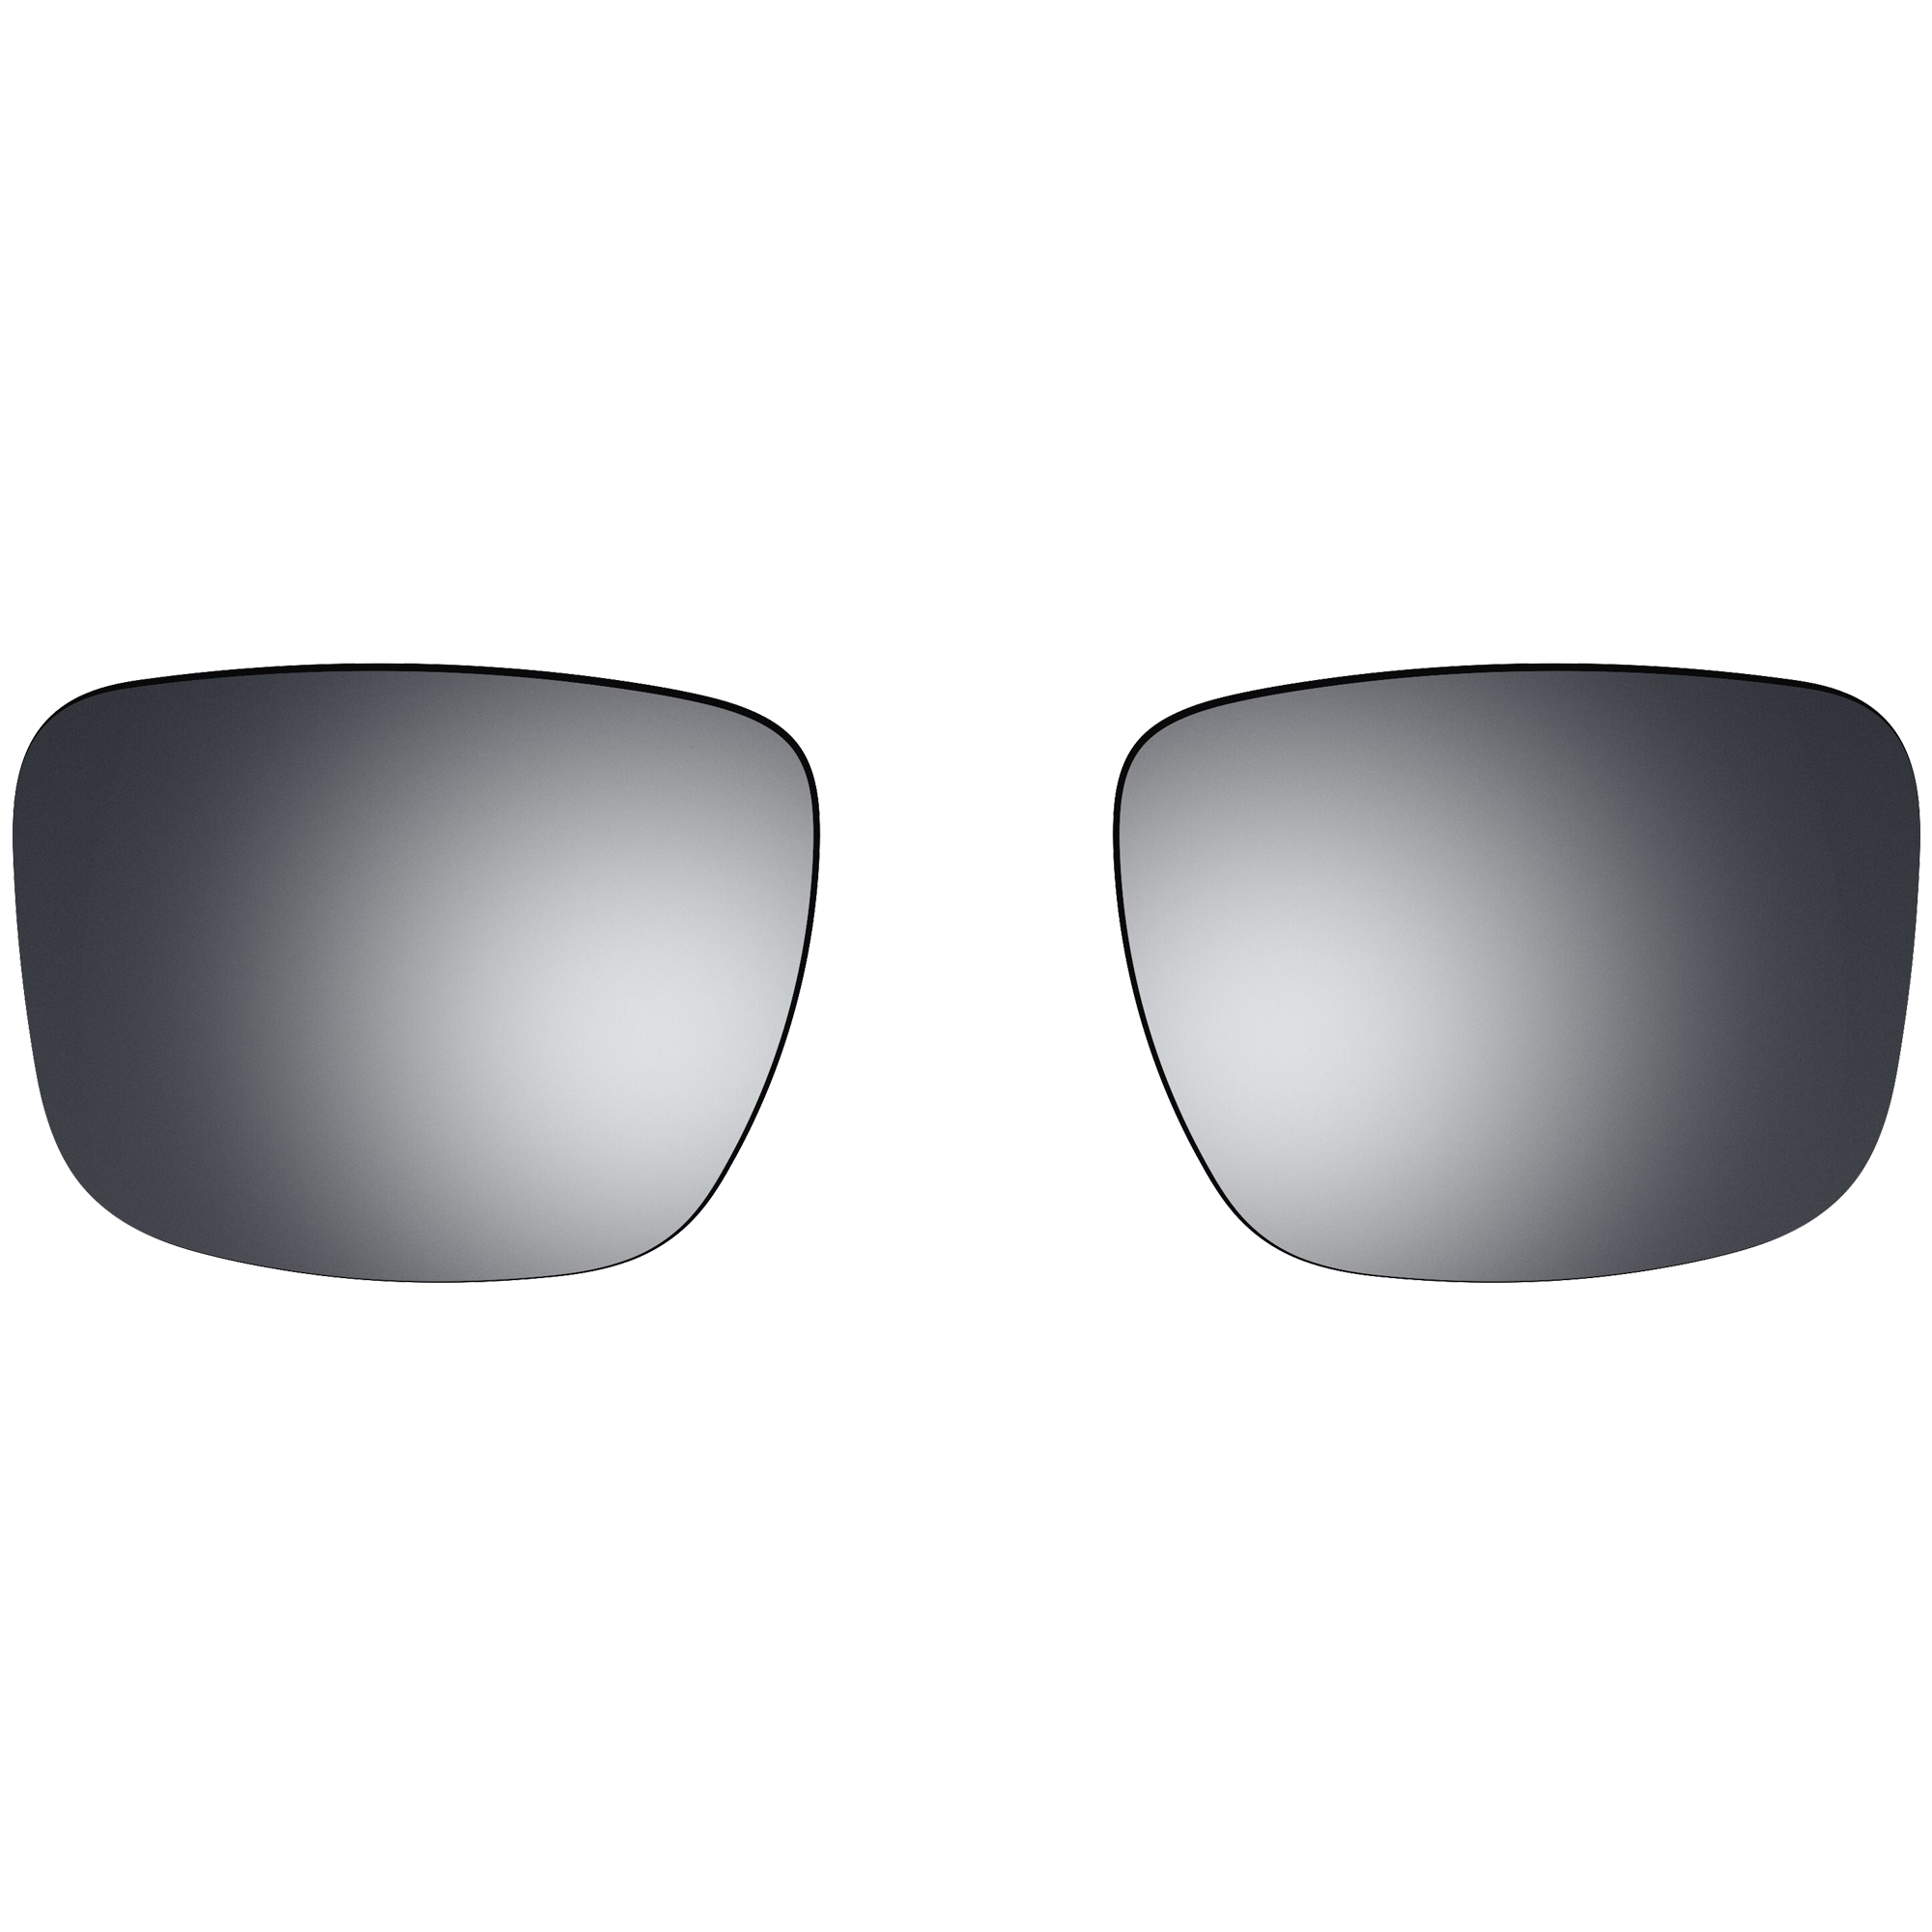 Bose Polycarbonate Replacement Lenses (Blocks Up to 99 Percent UVA/UVB Rays, 855979-0300, Mirrored Silver)_1